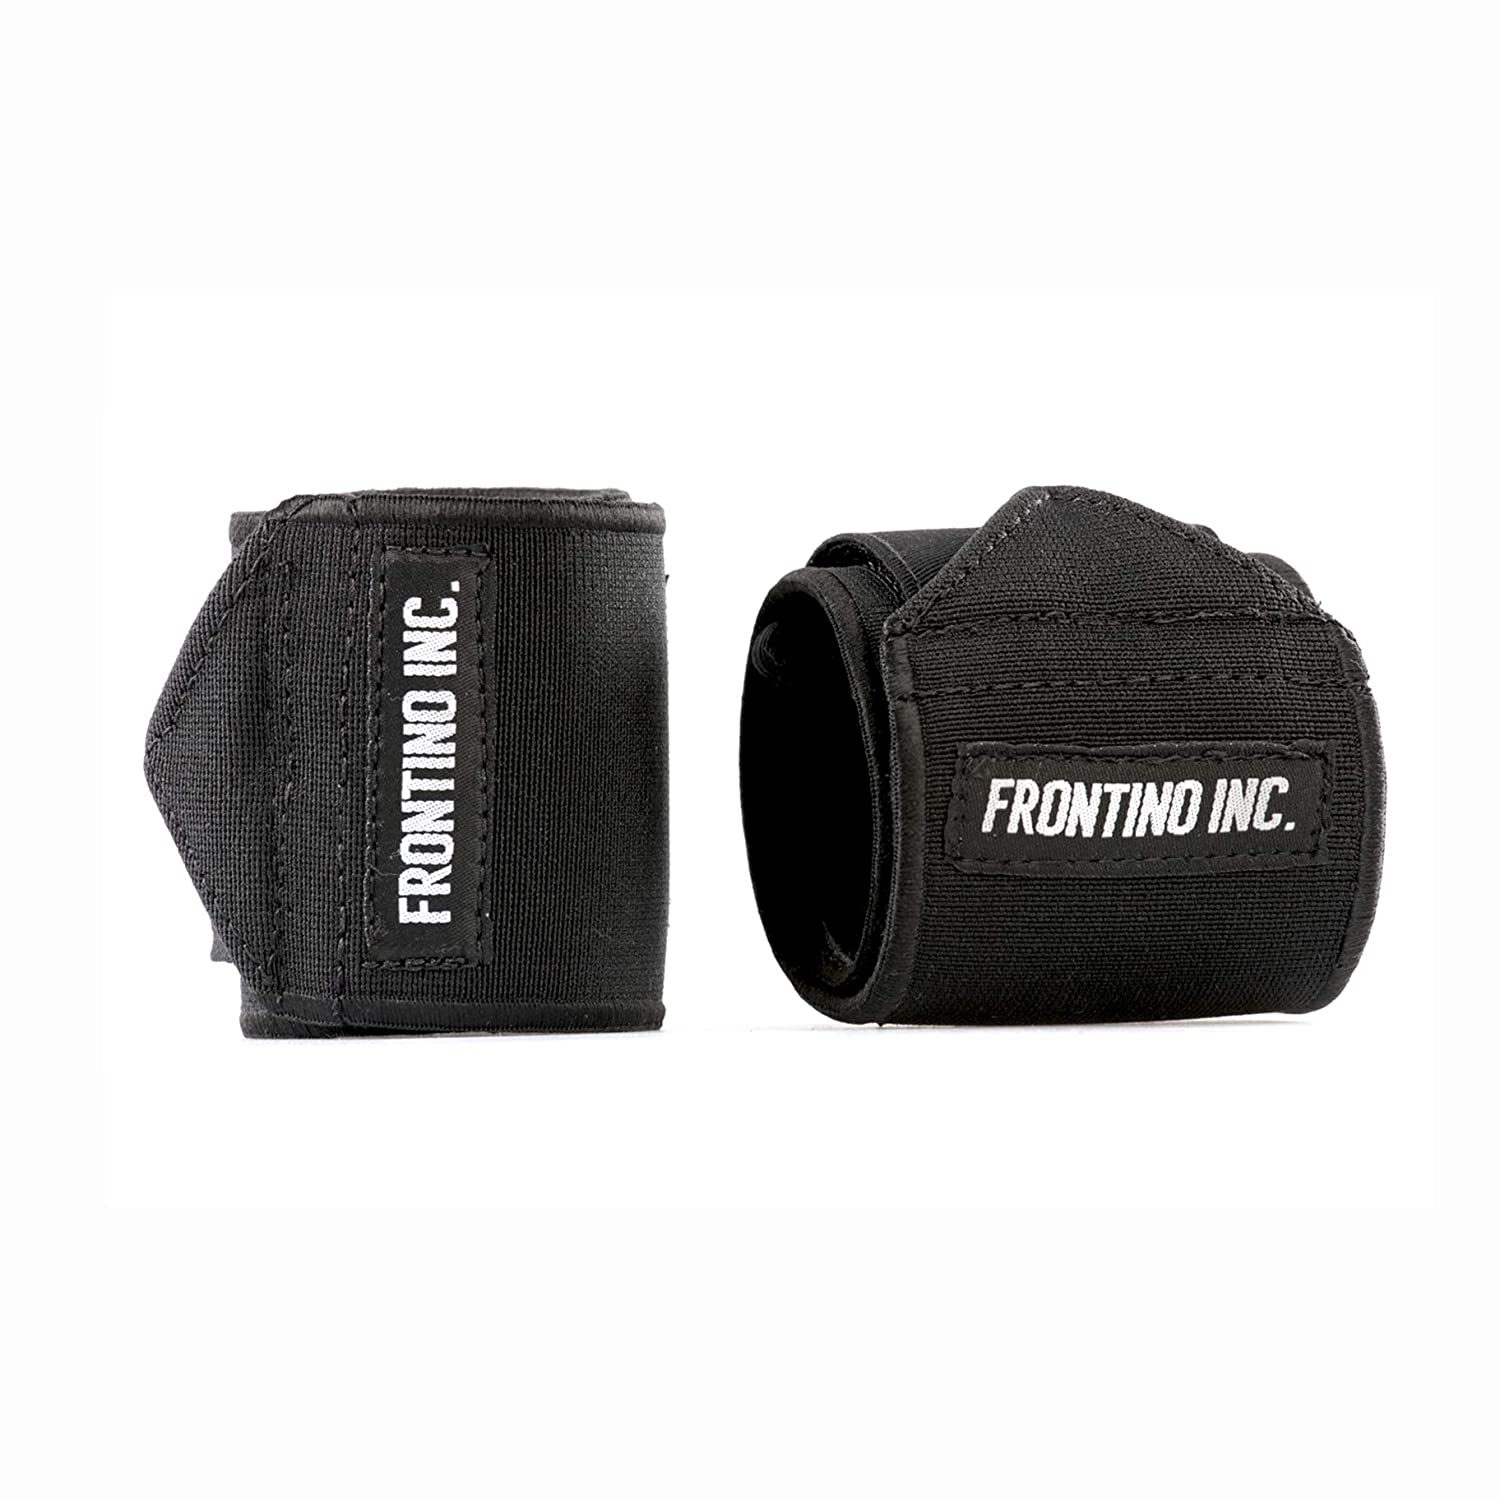 Black Frontino Inc. Elastic Wrist Wraps Wrist Predection Support Crossfit WOD, Fitness, Powerlifting, Gymnastics, Bodybuilding, Weightlifting Weight Training